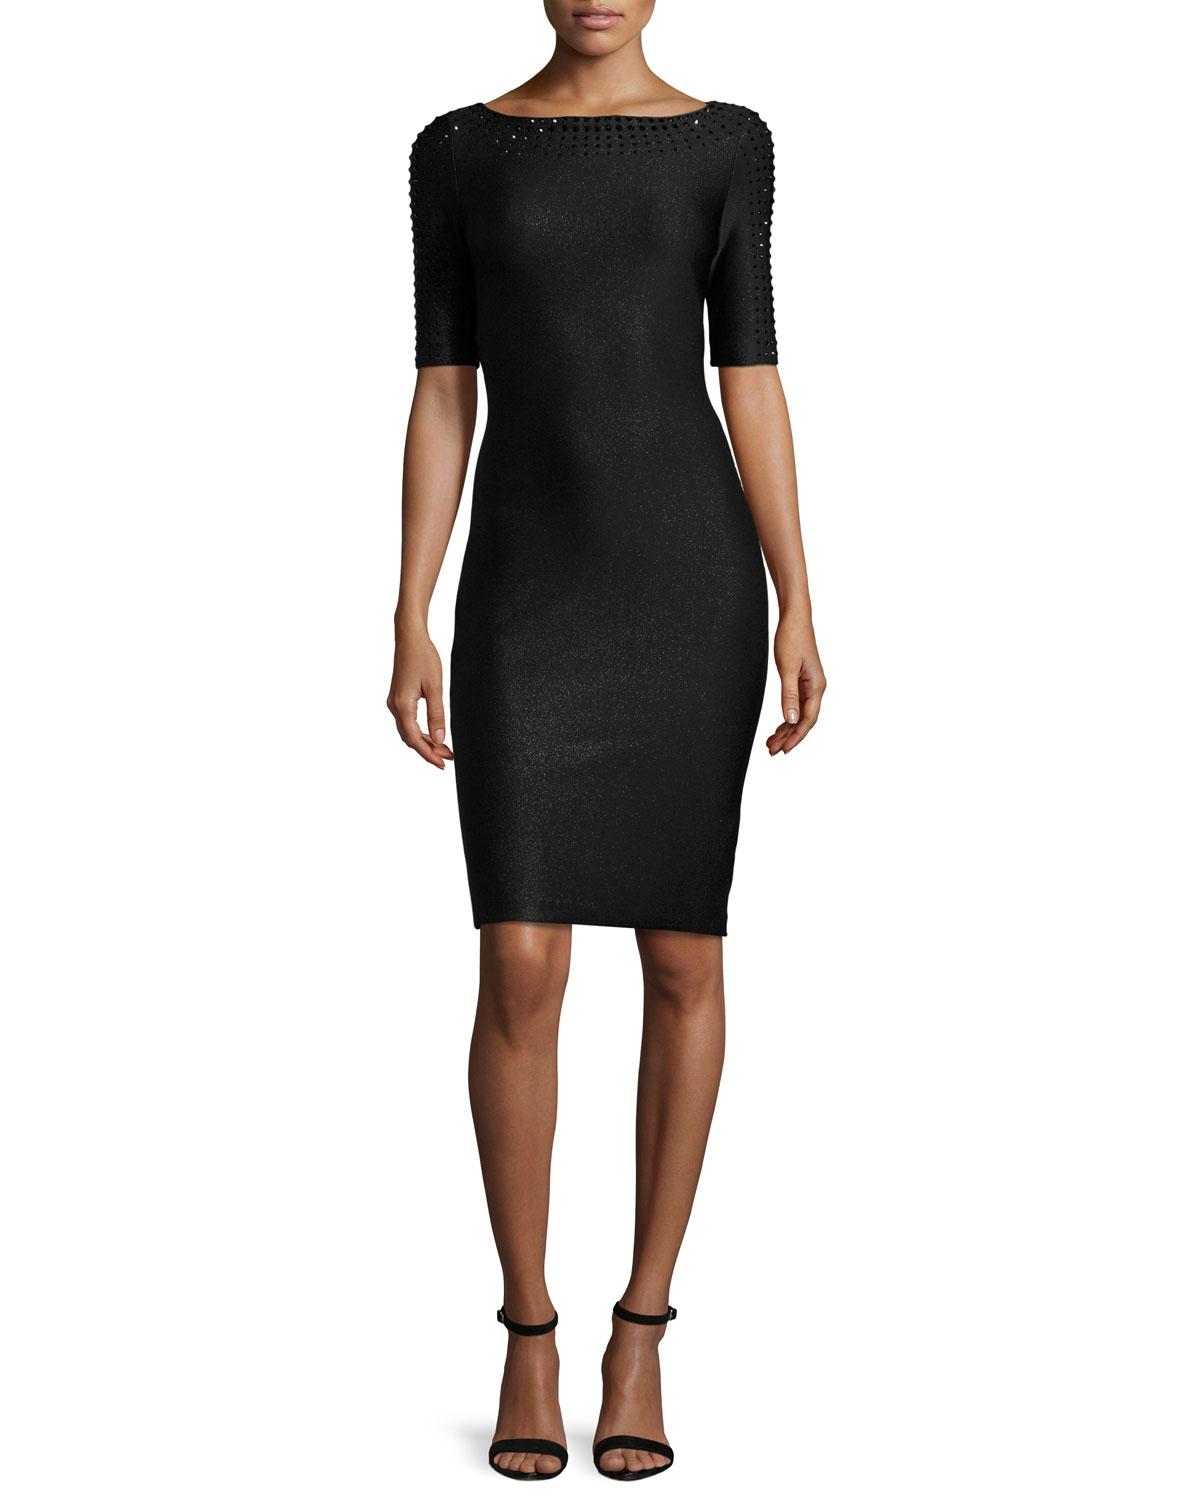 Shimmery Half-Sleeve Sheath Dress, Caviar